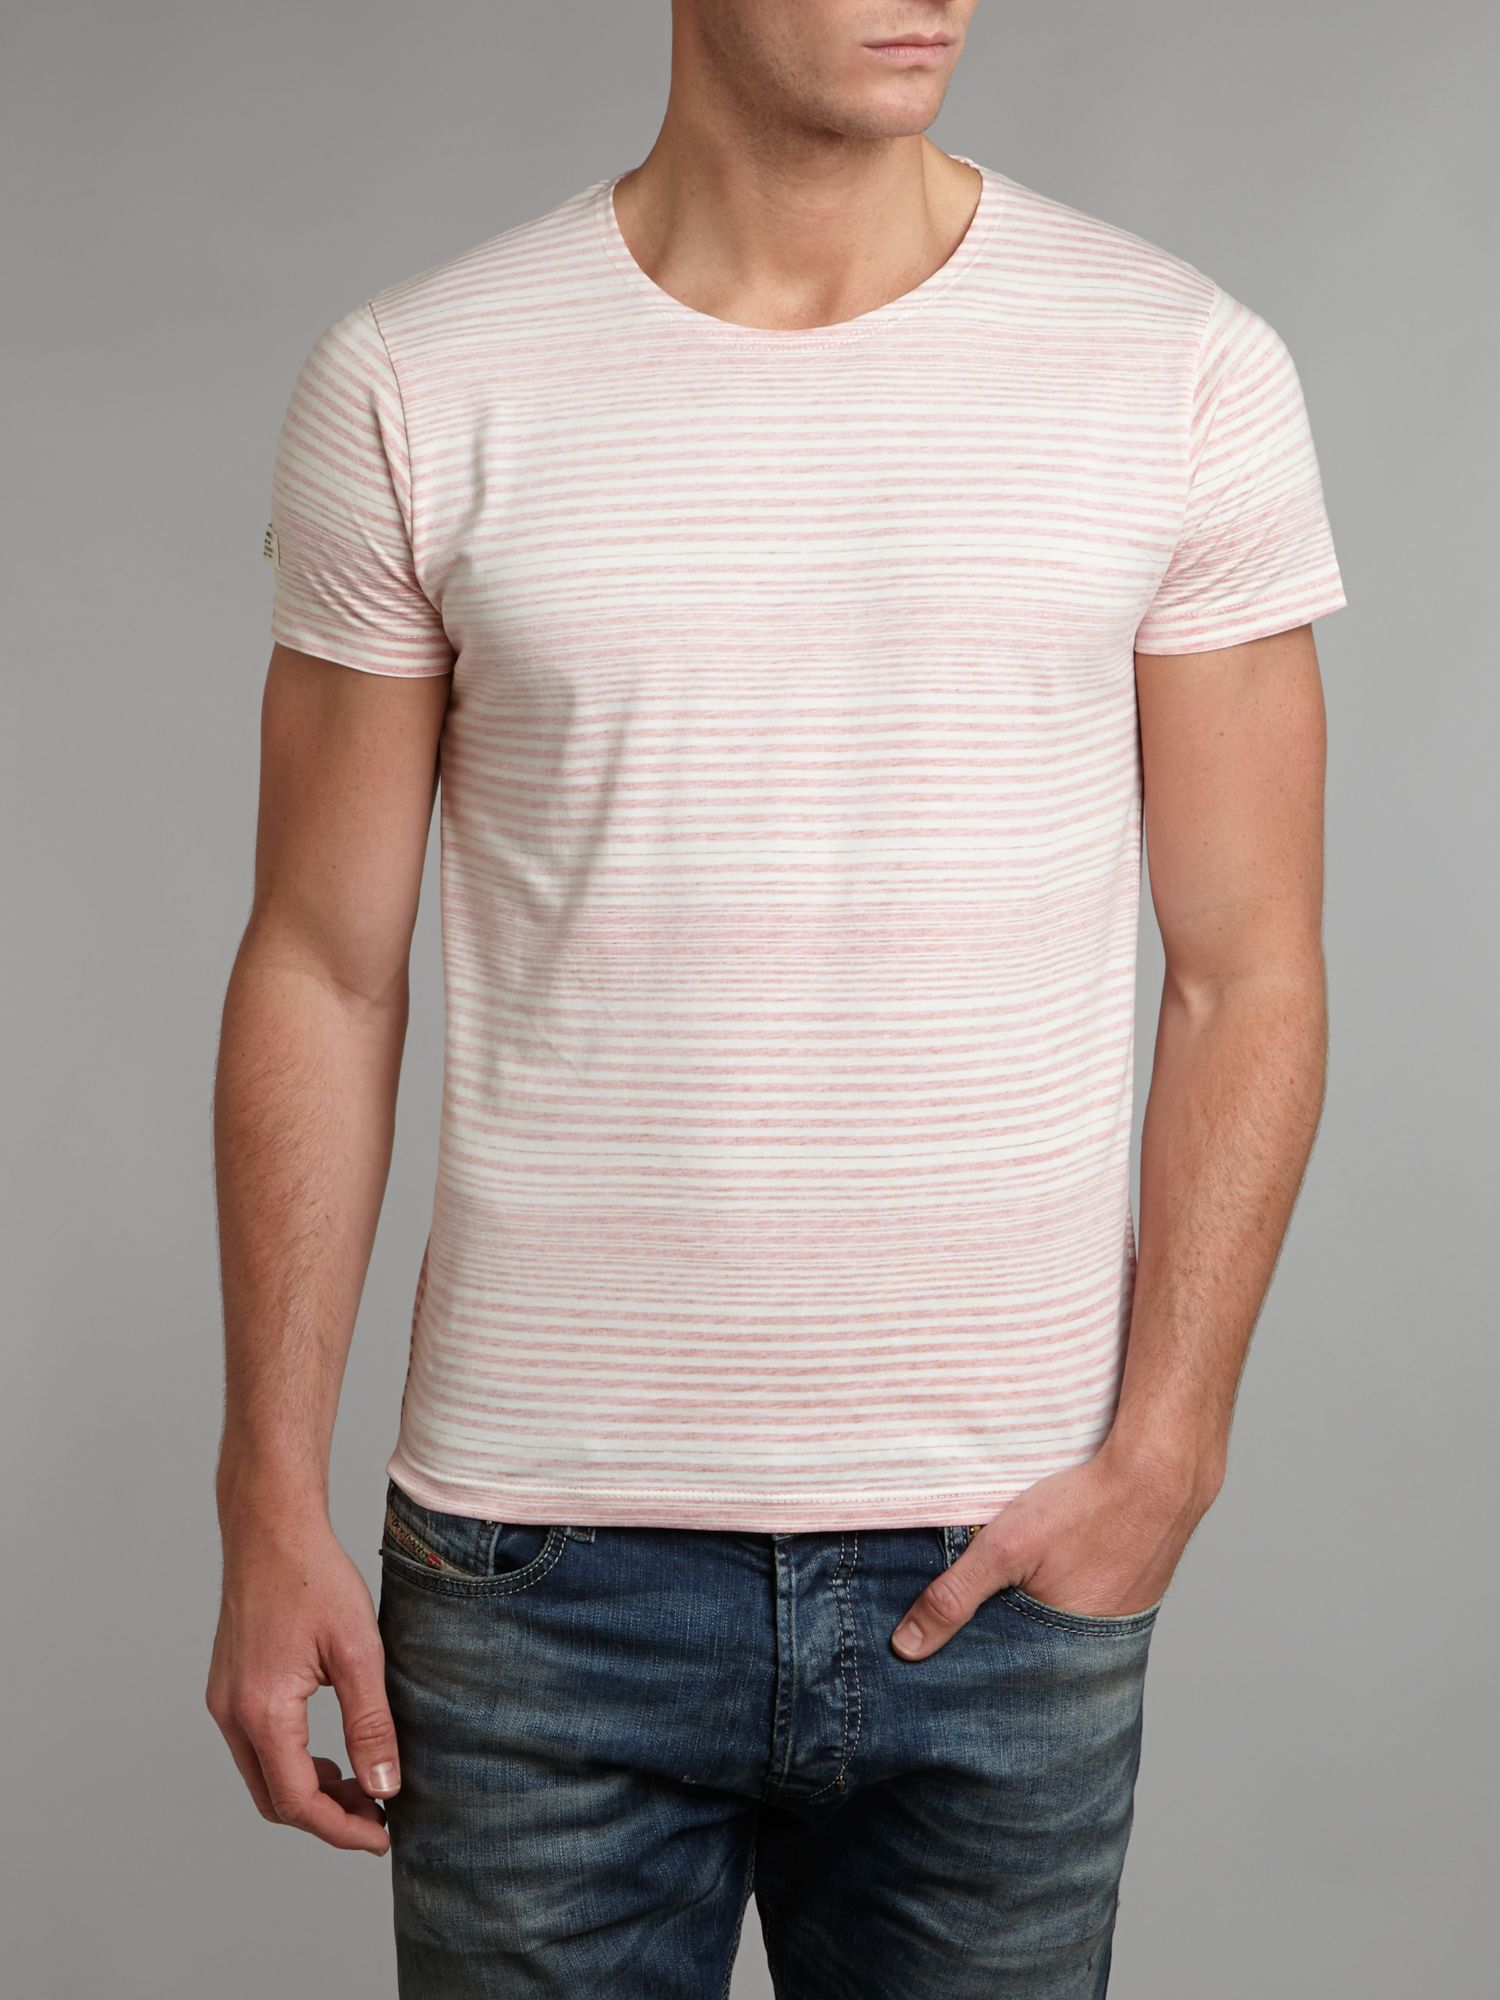 Short-sleeved stripe t-shirt